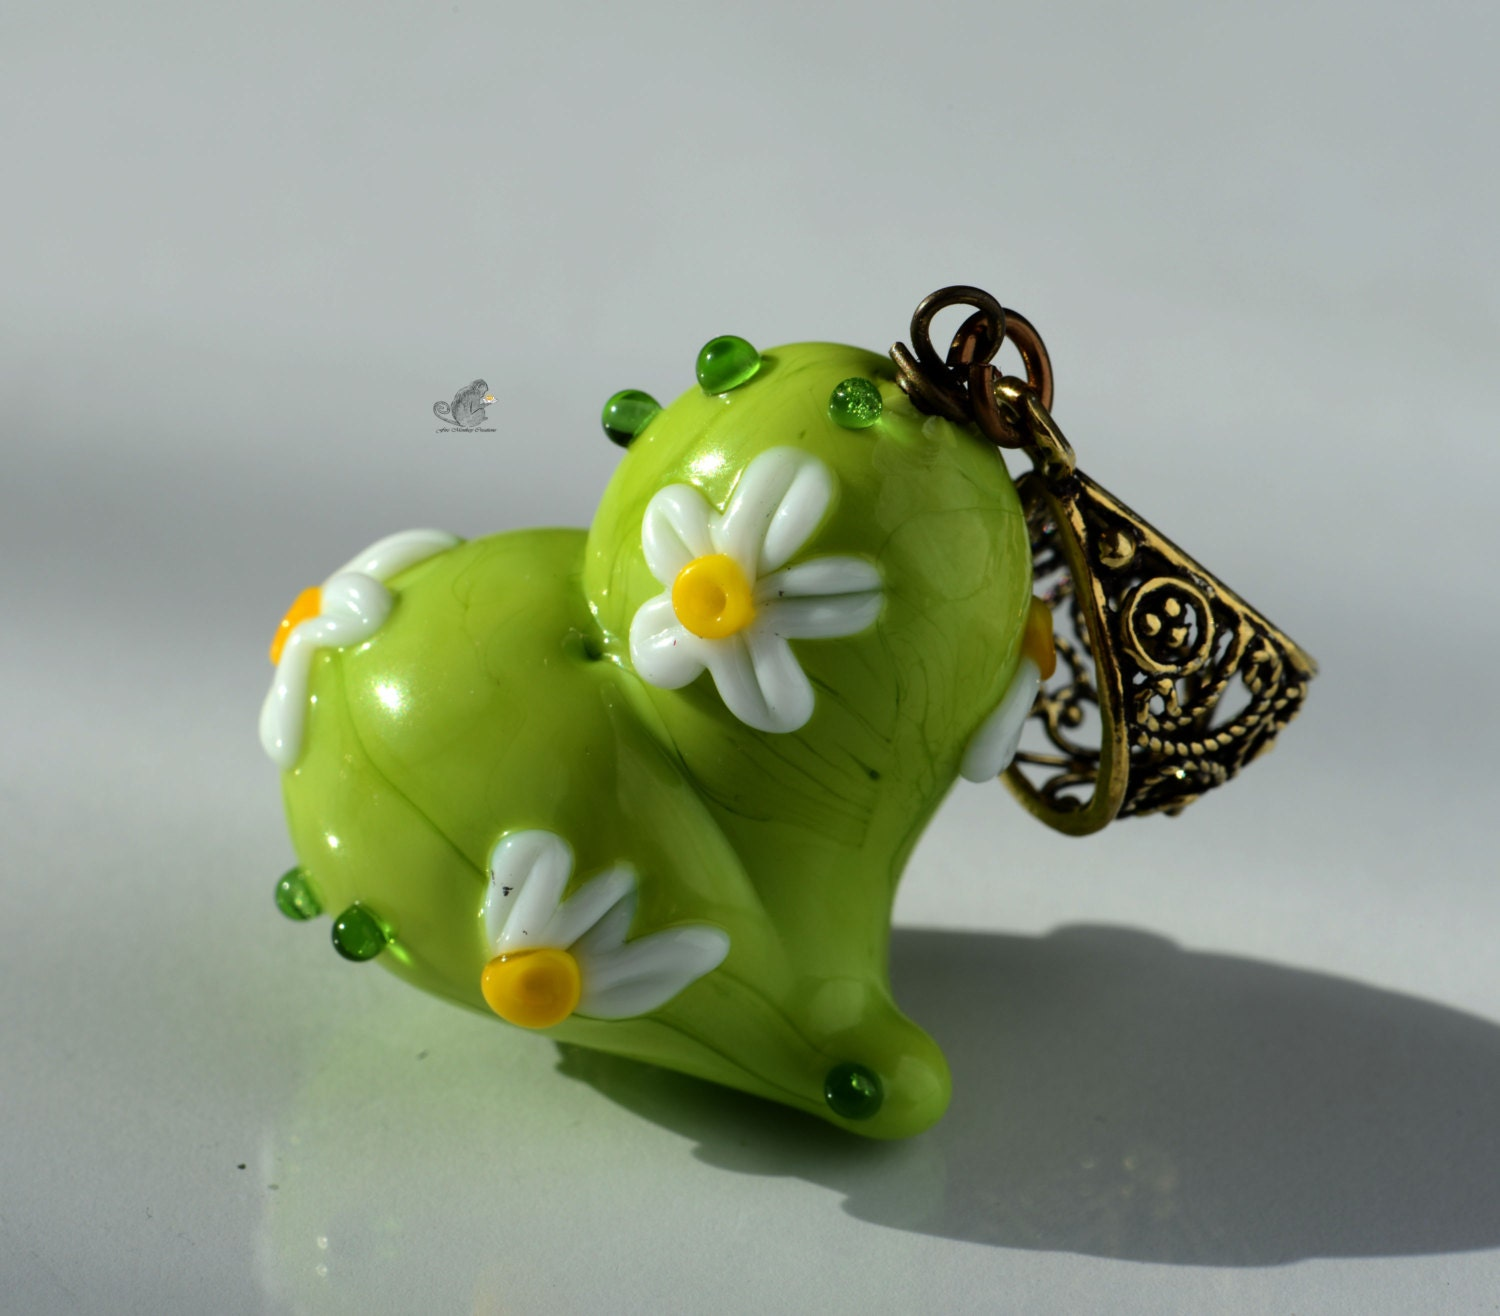 Lampwork Pendant Handmade Glass Jewelry Green and Floral Heart Valentine - FireMonkeyCreations